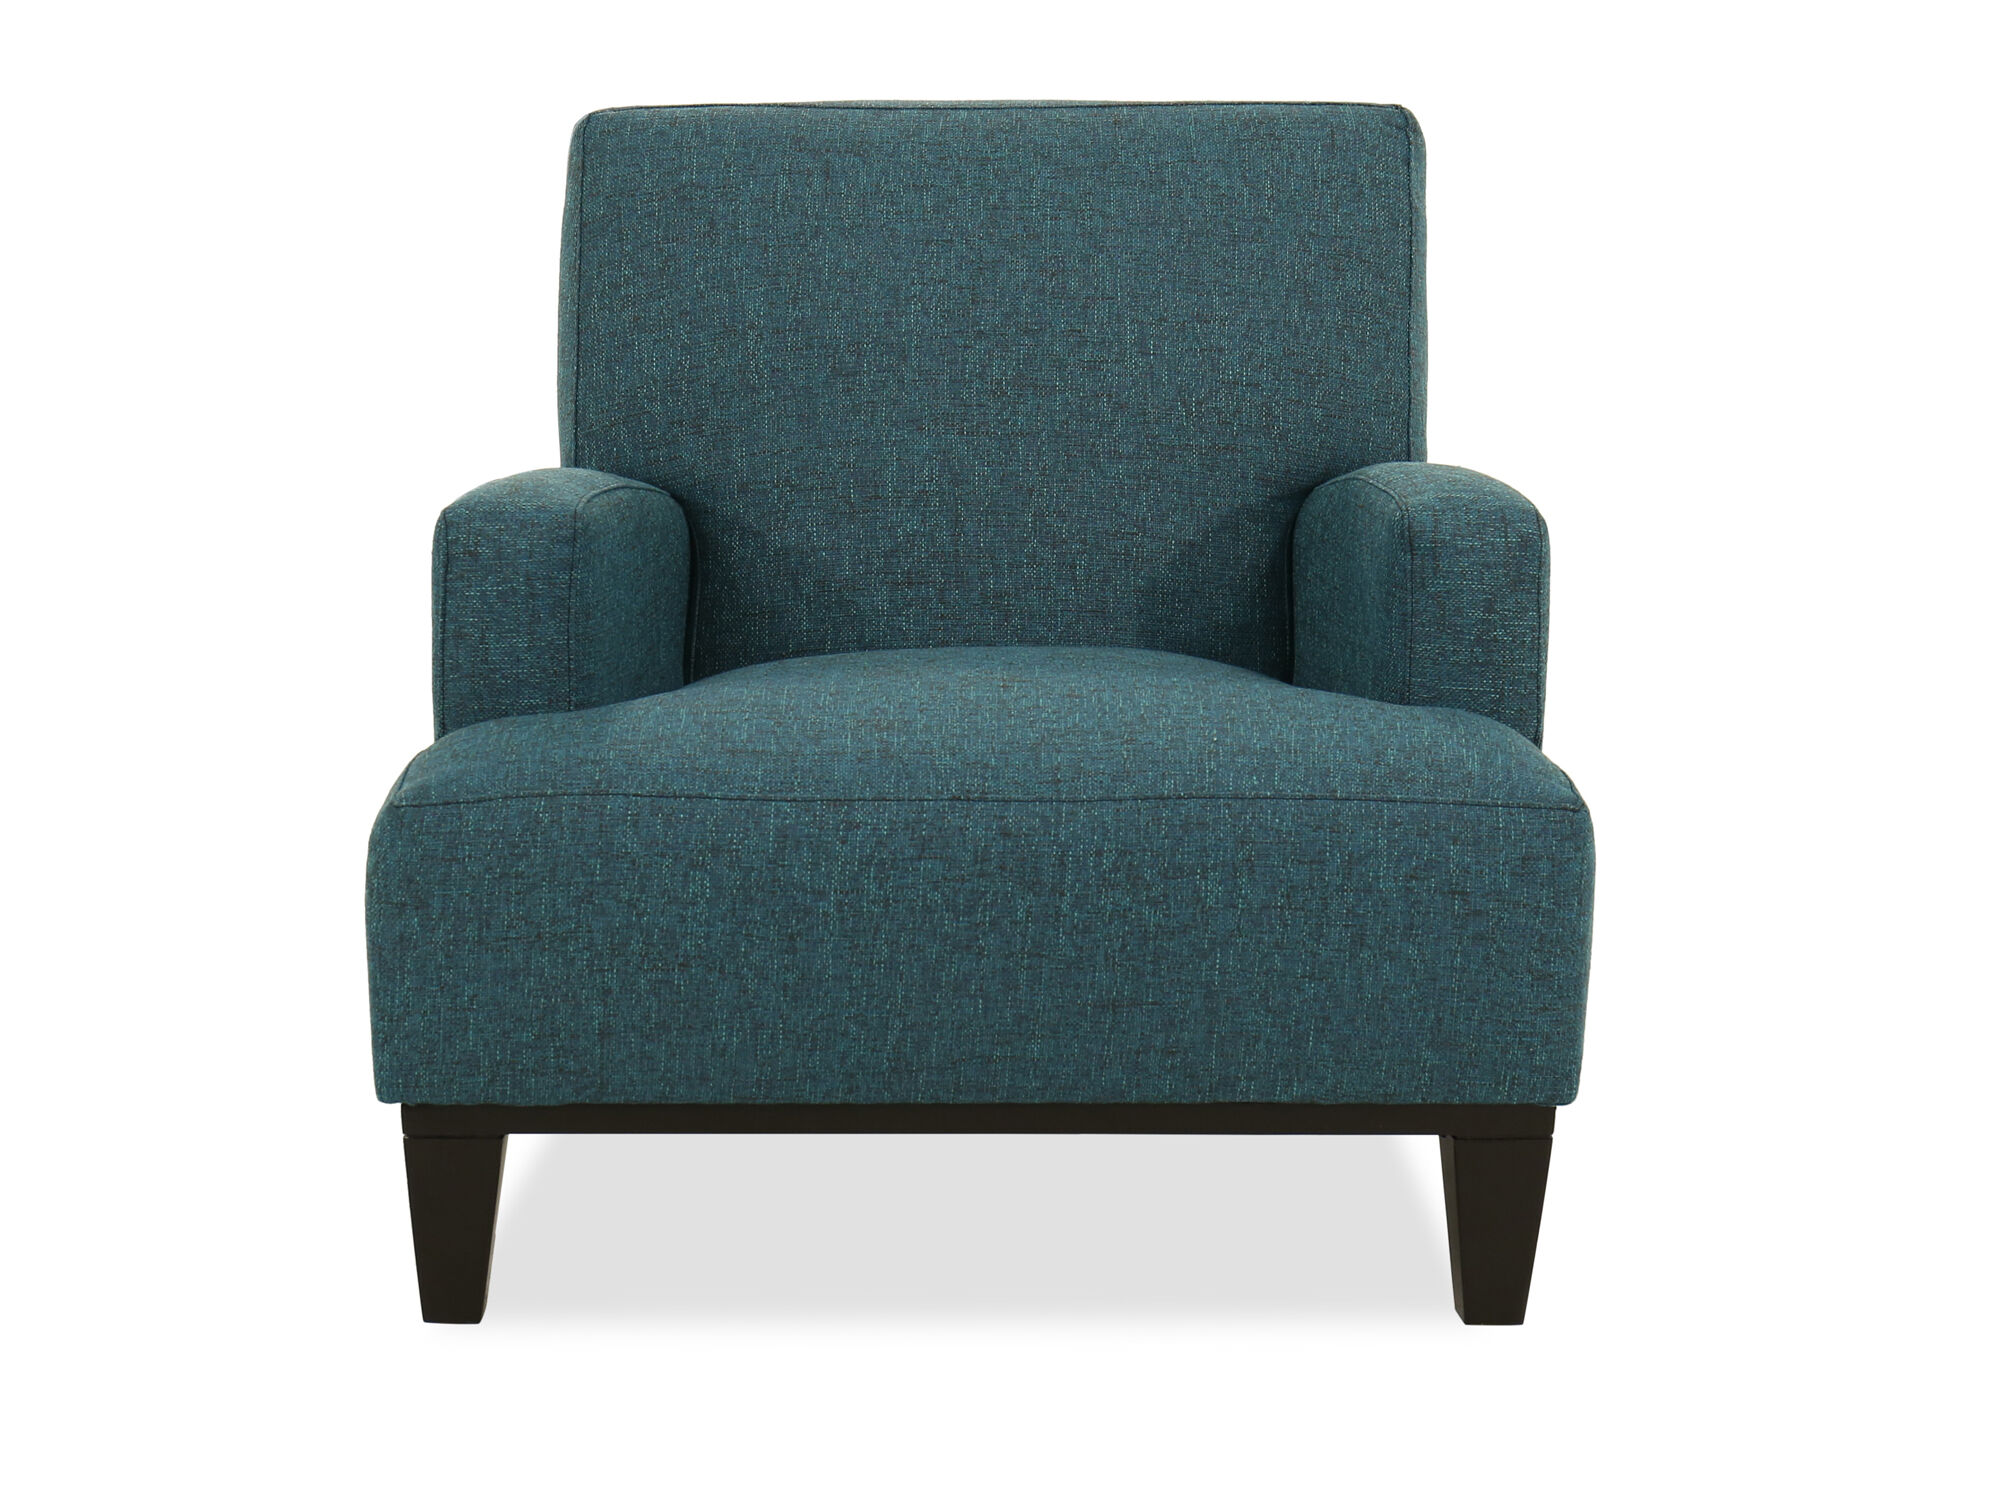 accent chair teal round covers 30 quot in mathis brothers furniture